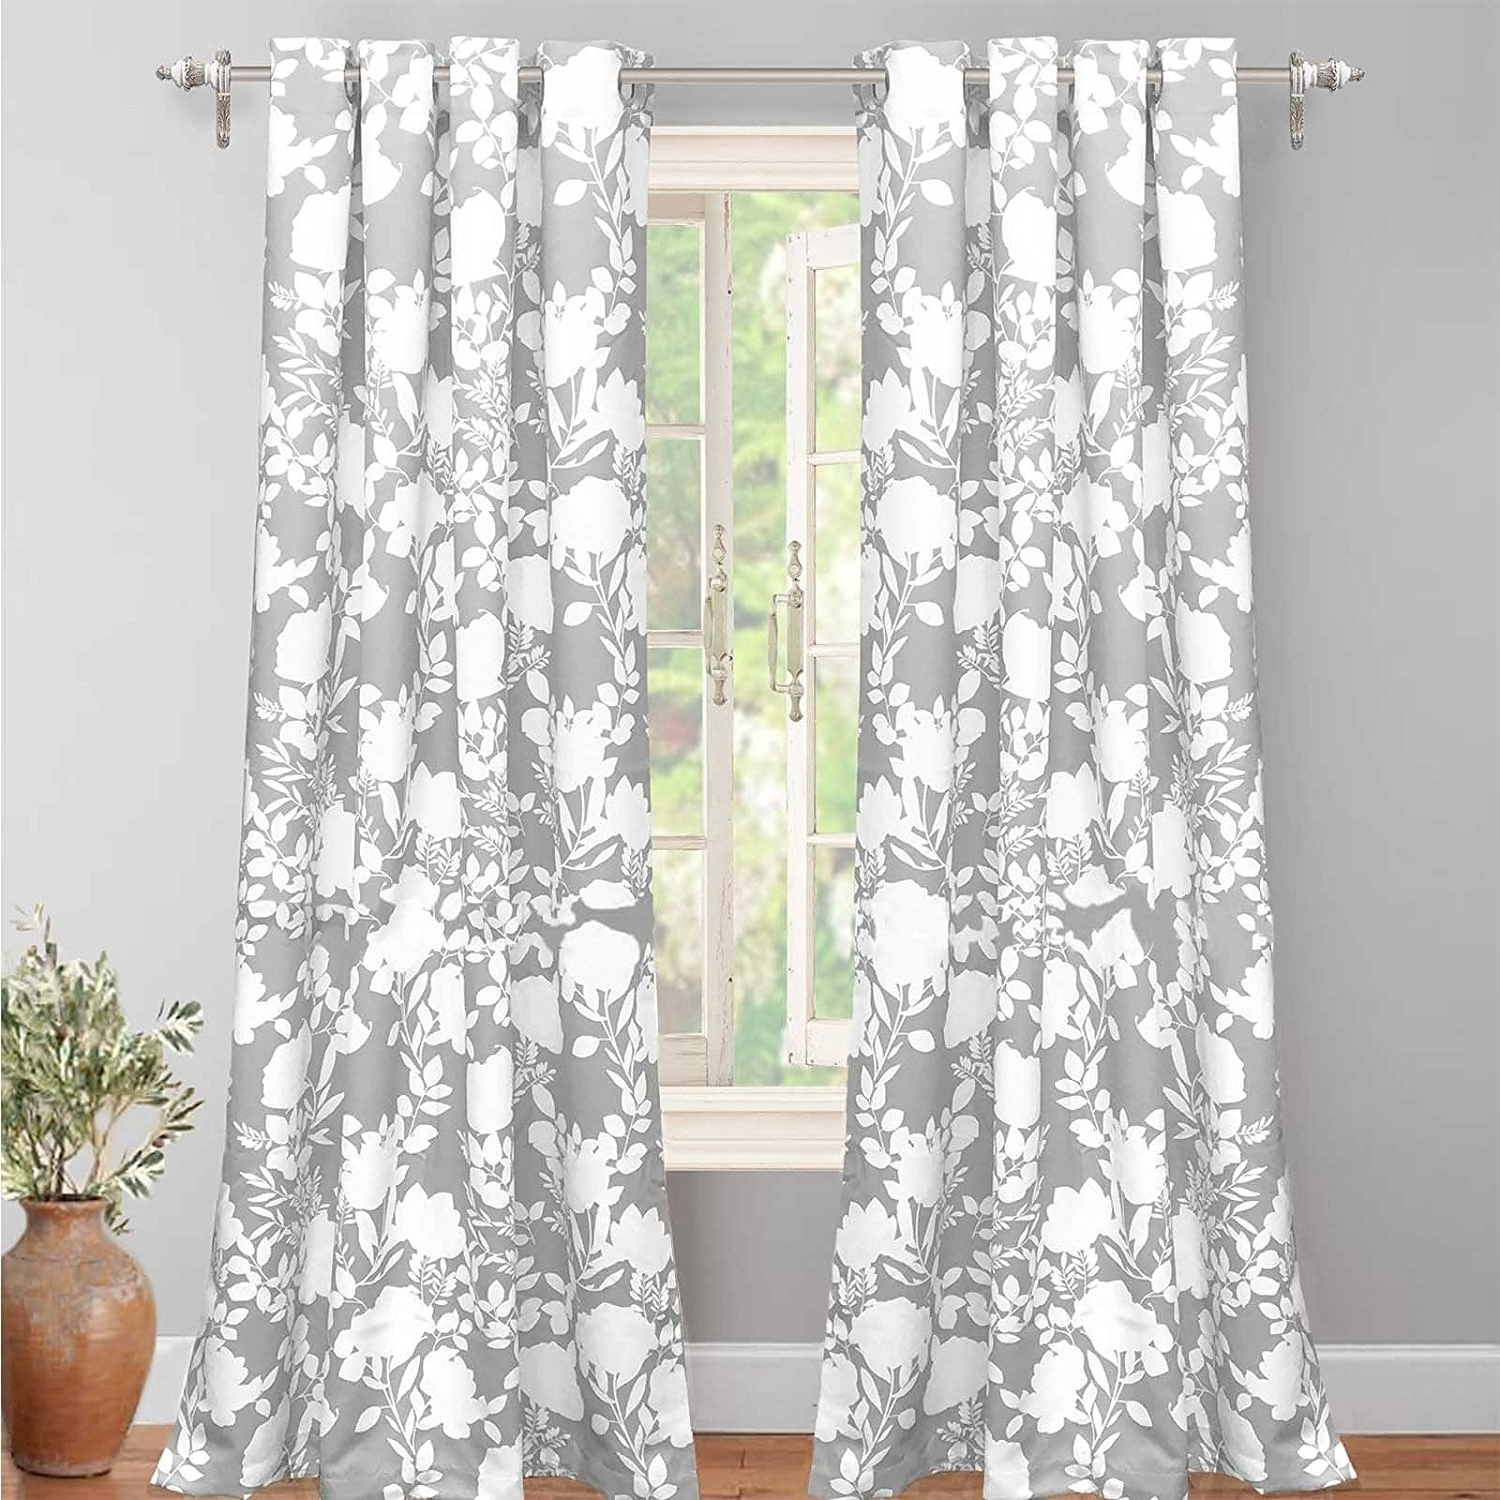 2020 Pastel Damask Printed Room Darkening Kitchen Tiers Inside Driftaway Floral Delight Room Darkening Window Curtain Panel (View 8 of 20)